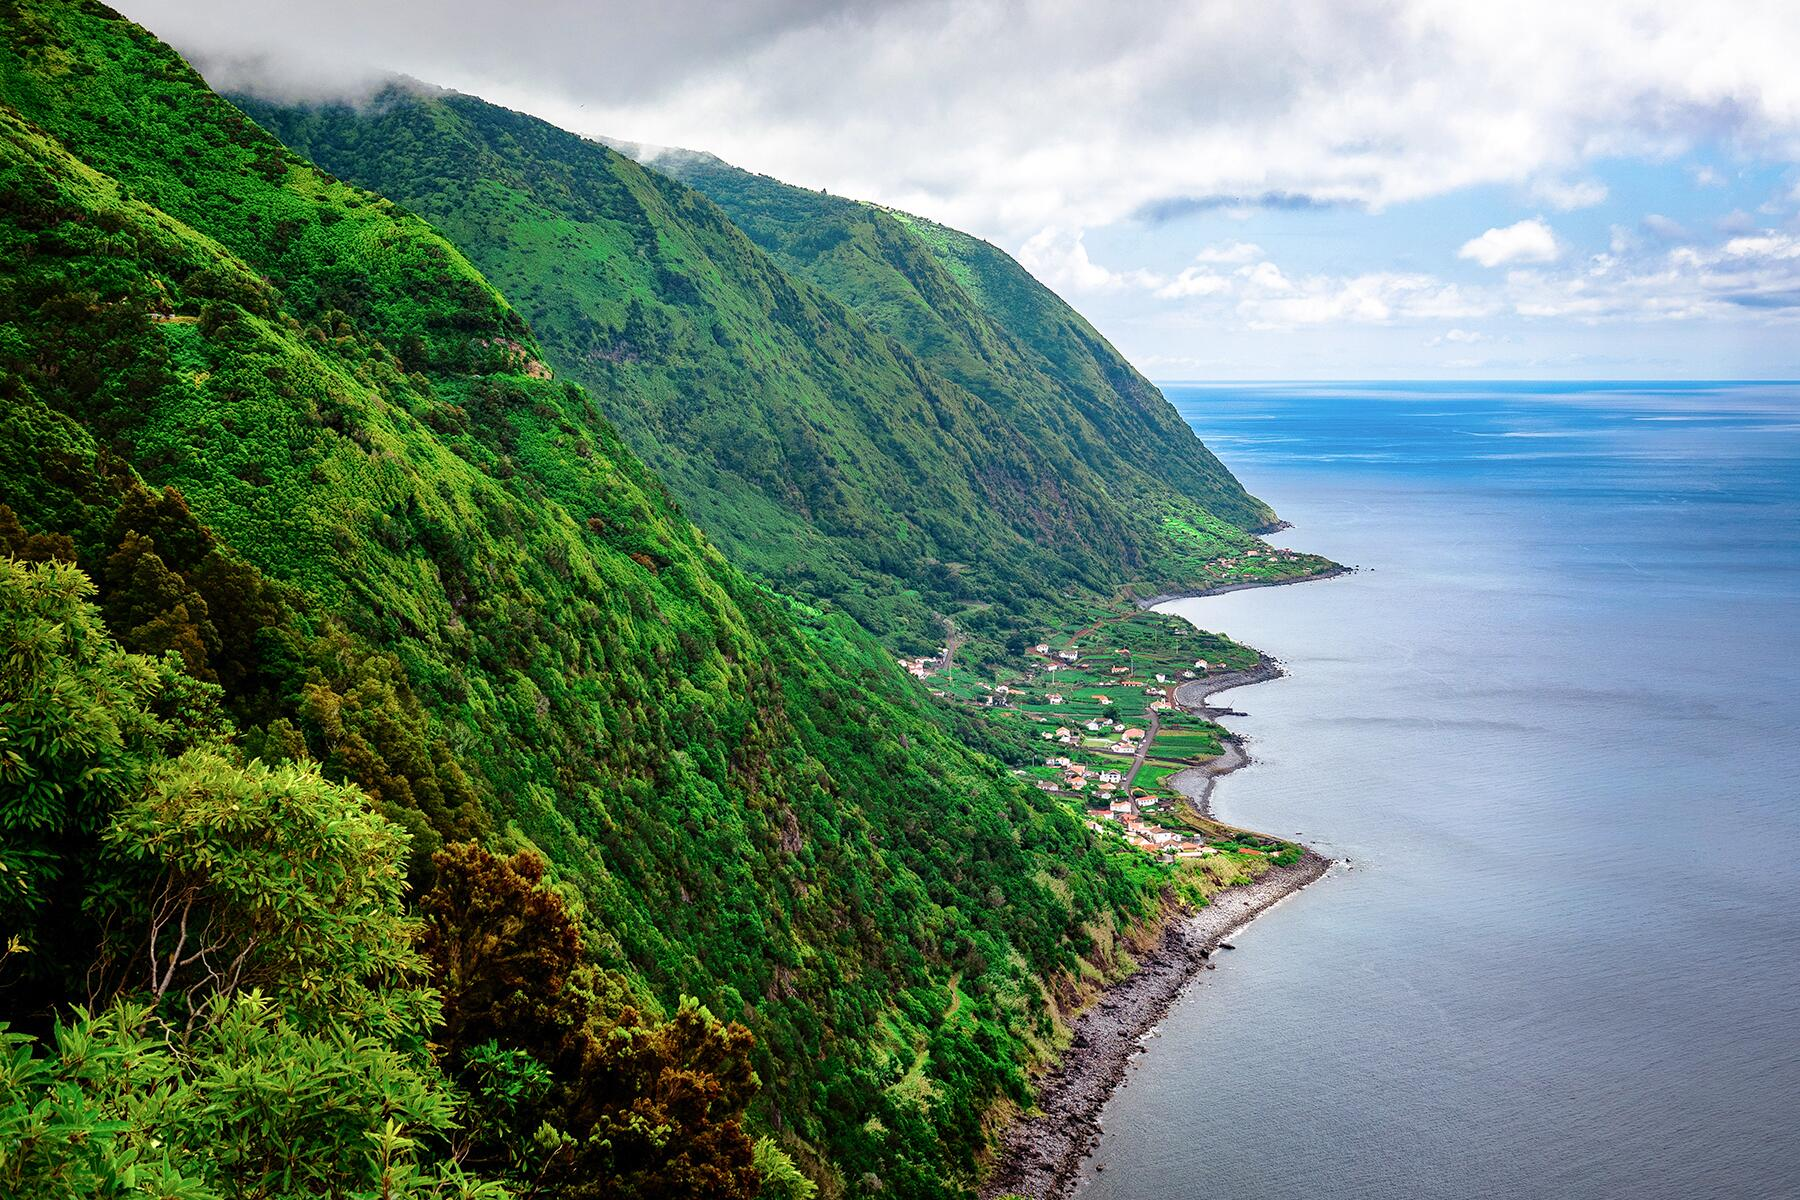 8 Stunning Natural Wonders in the Azores Islands You Have to Experience to Believe